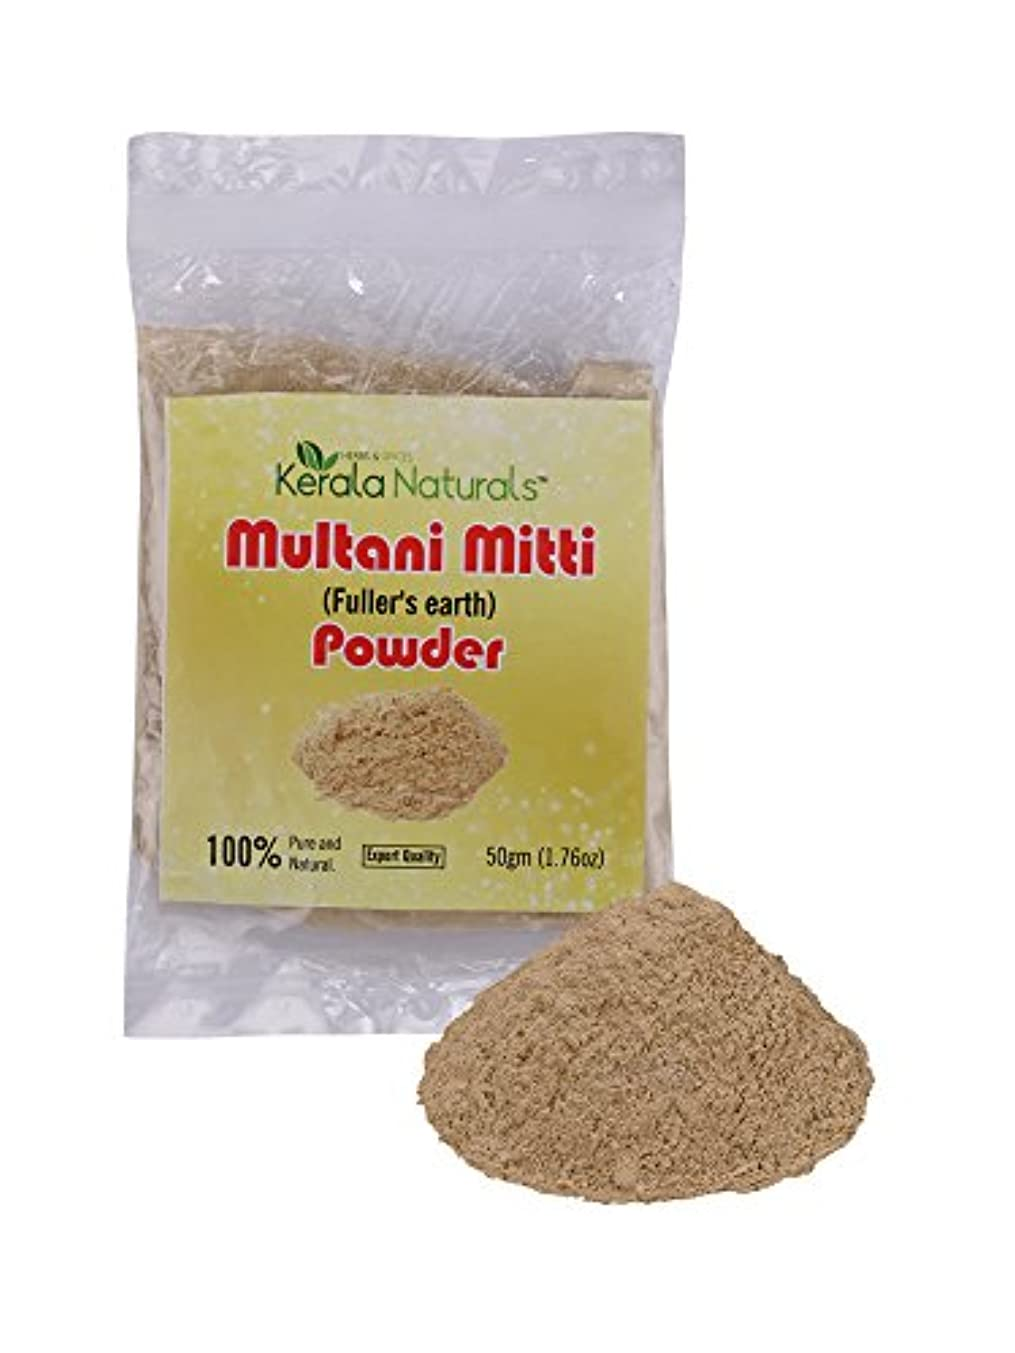 聡明区中国Multani Mitti Powder 200gm - Anti acne & Blemishes, Glowing Skin - Multani Mittiパウダー200gm-にきび&傷、輝く肌